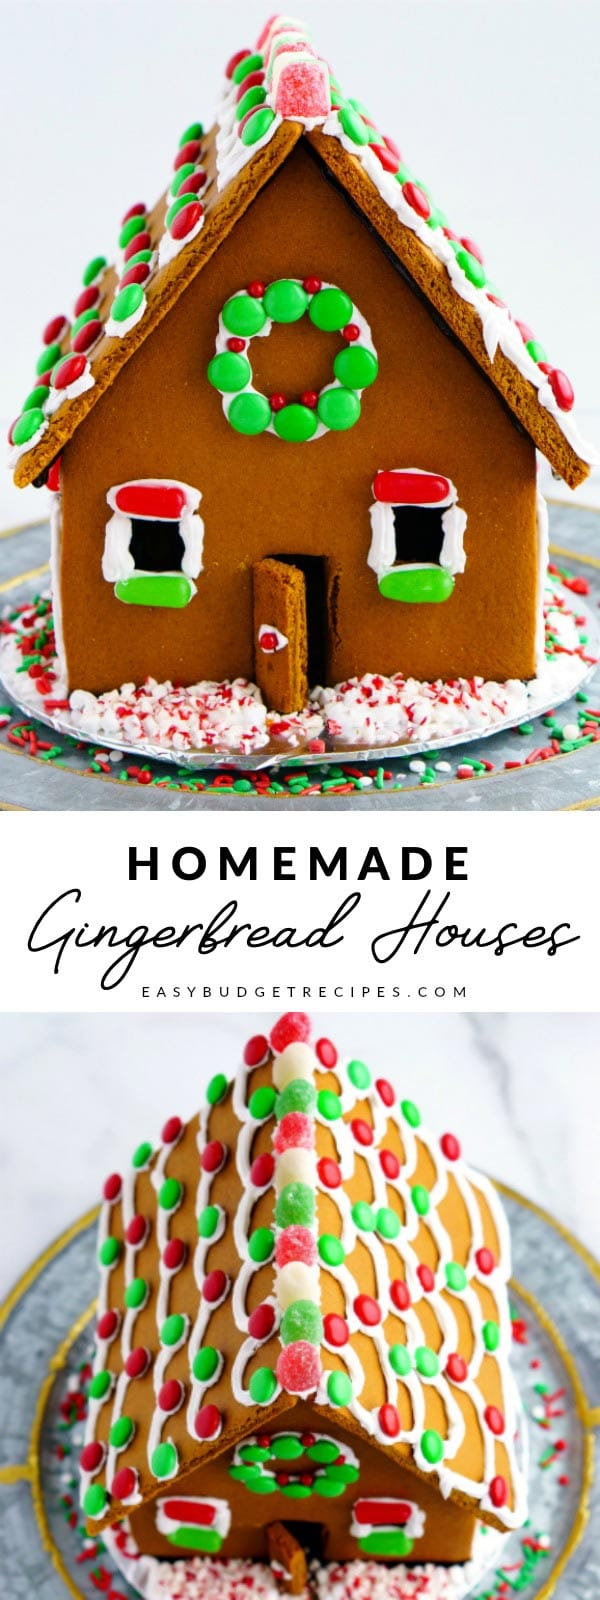 Our Homemade Gingerbread Houses are more than a recipe, they're a tradition. Our recipe is complete with an easy-to-use template, plus it costs just $6.95 to make 2 houses! via @easybudgetrecipes